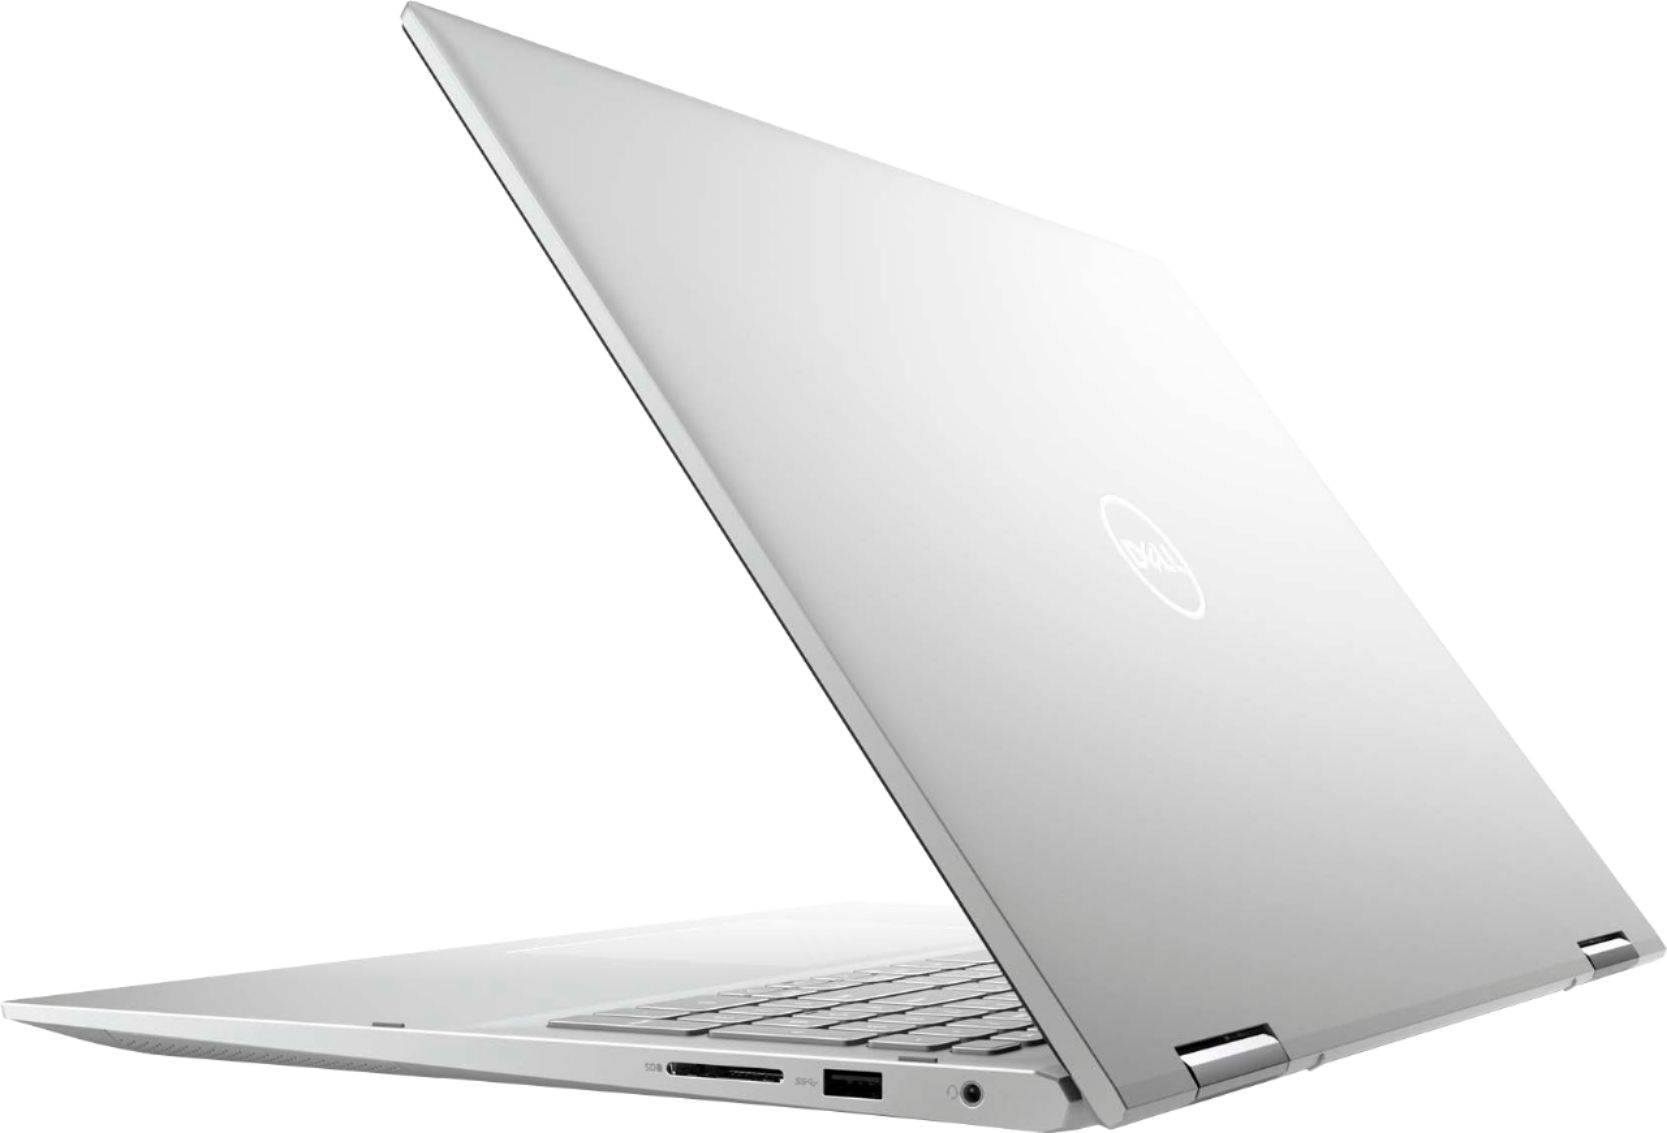 """Alt View Zoom 1. Dell - Inspiron 7000 2-in-1 - 17"""" QHD+ Touch Laptop - 11th Gen Intel Core i7 -NVIDIA - 16GB RAM - 512GB SSD+32GB Optane - Silver."""